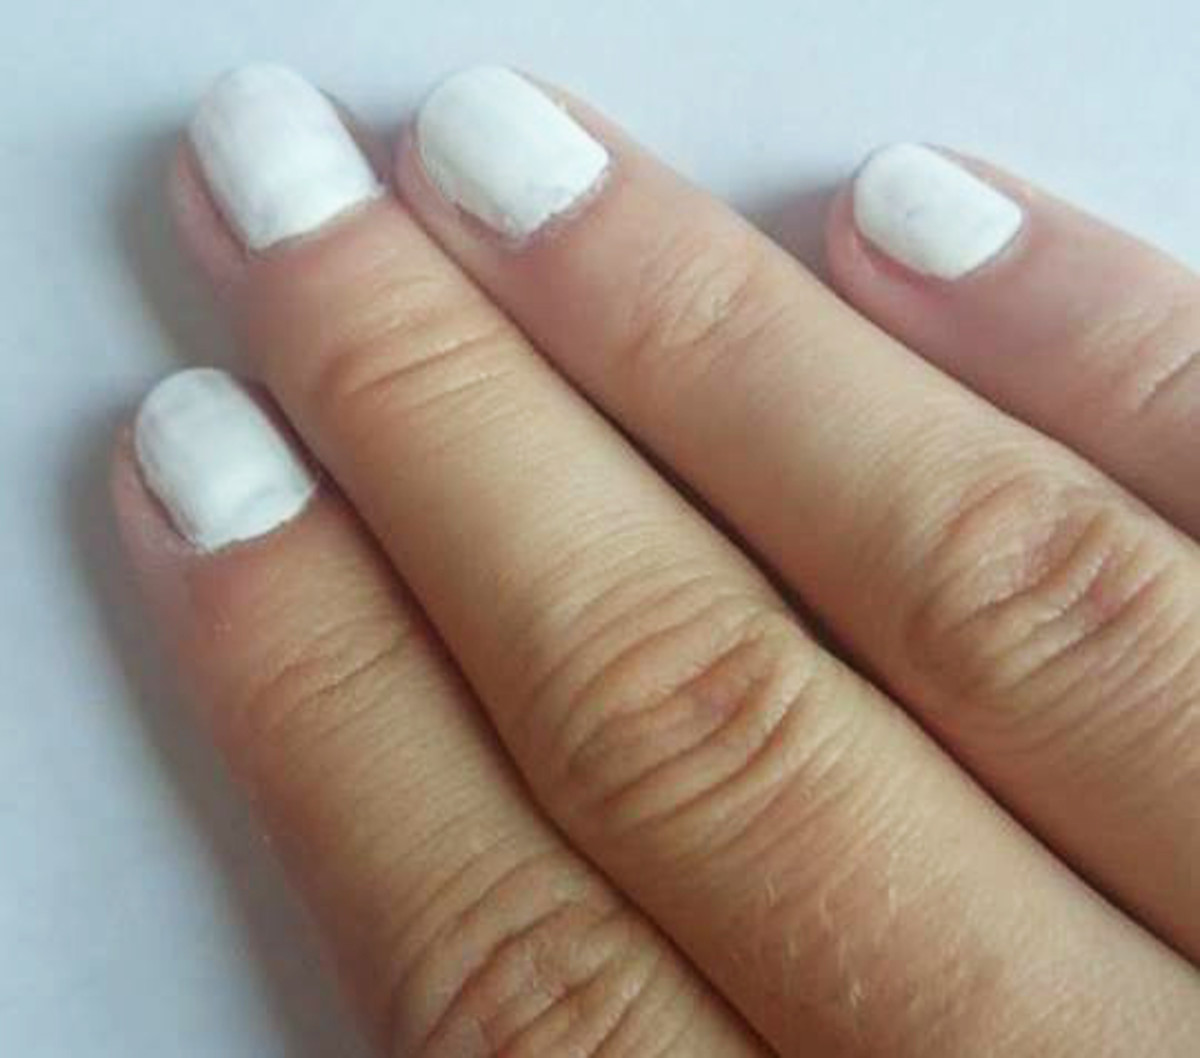 Paint the nails white using one or two coats of polish.